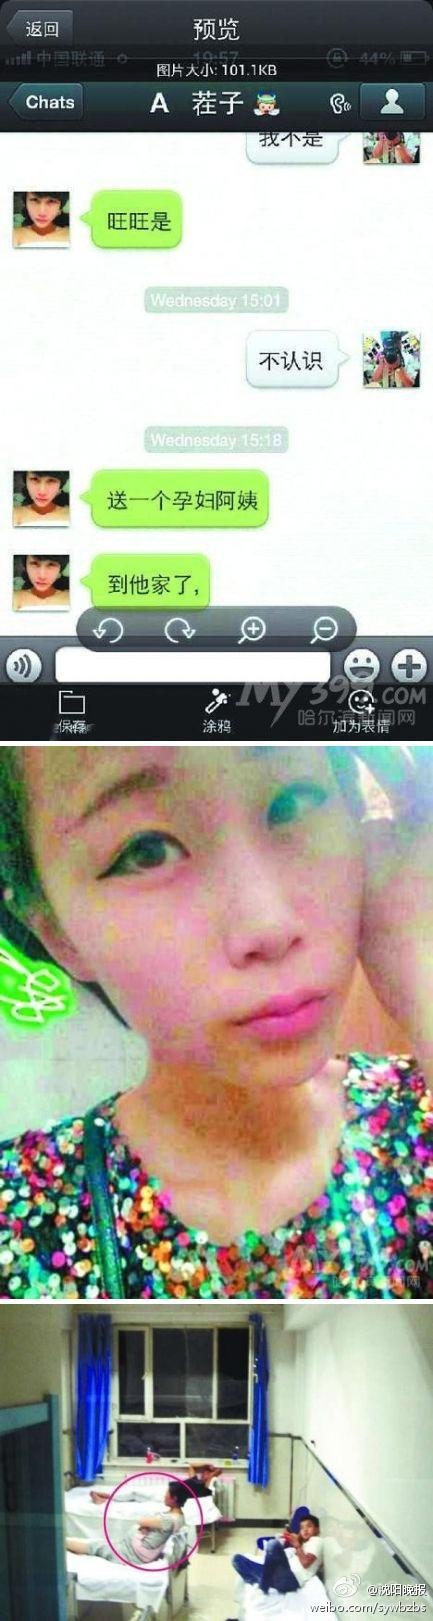 Hu Yixuan's final Weixin/WeChat messages, a photo of Hu Yixuan, a photo of the pregnant wife who tricked her into following her home to satisfy the sexual needs of her husband.